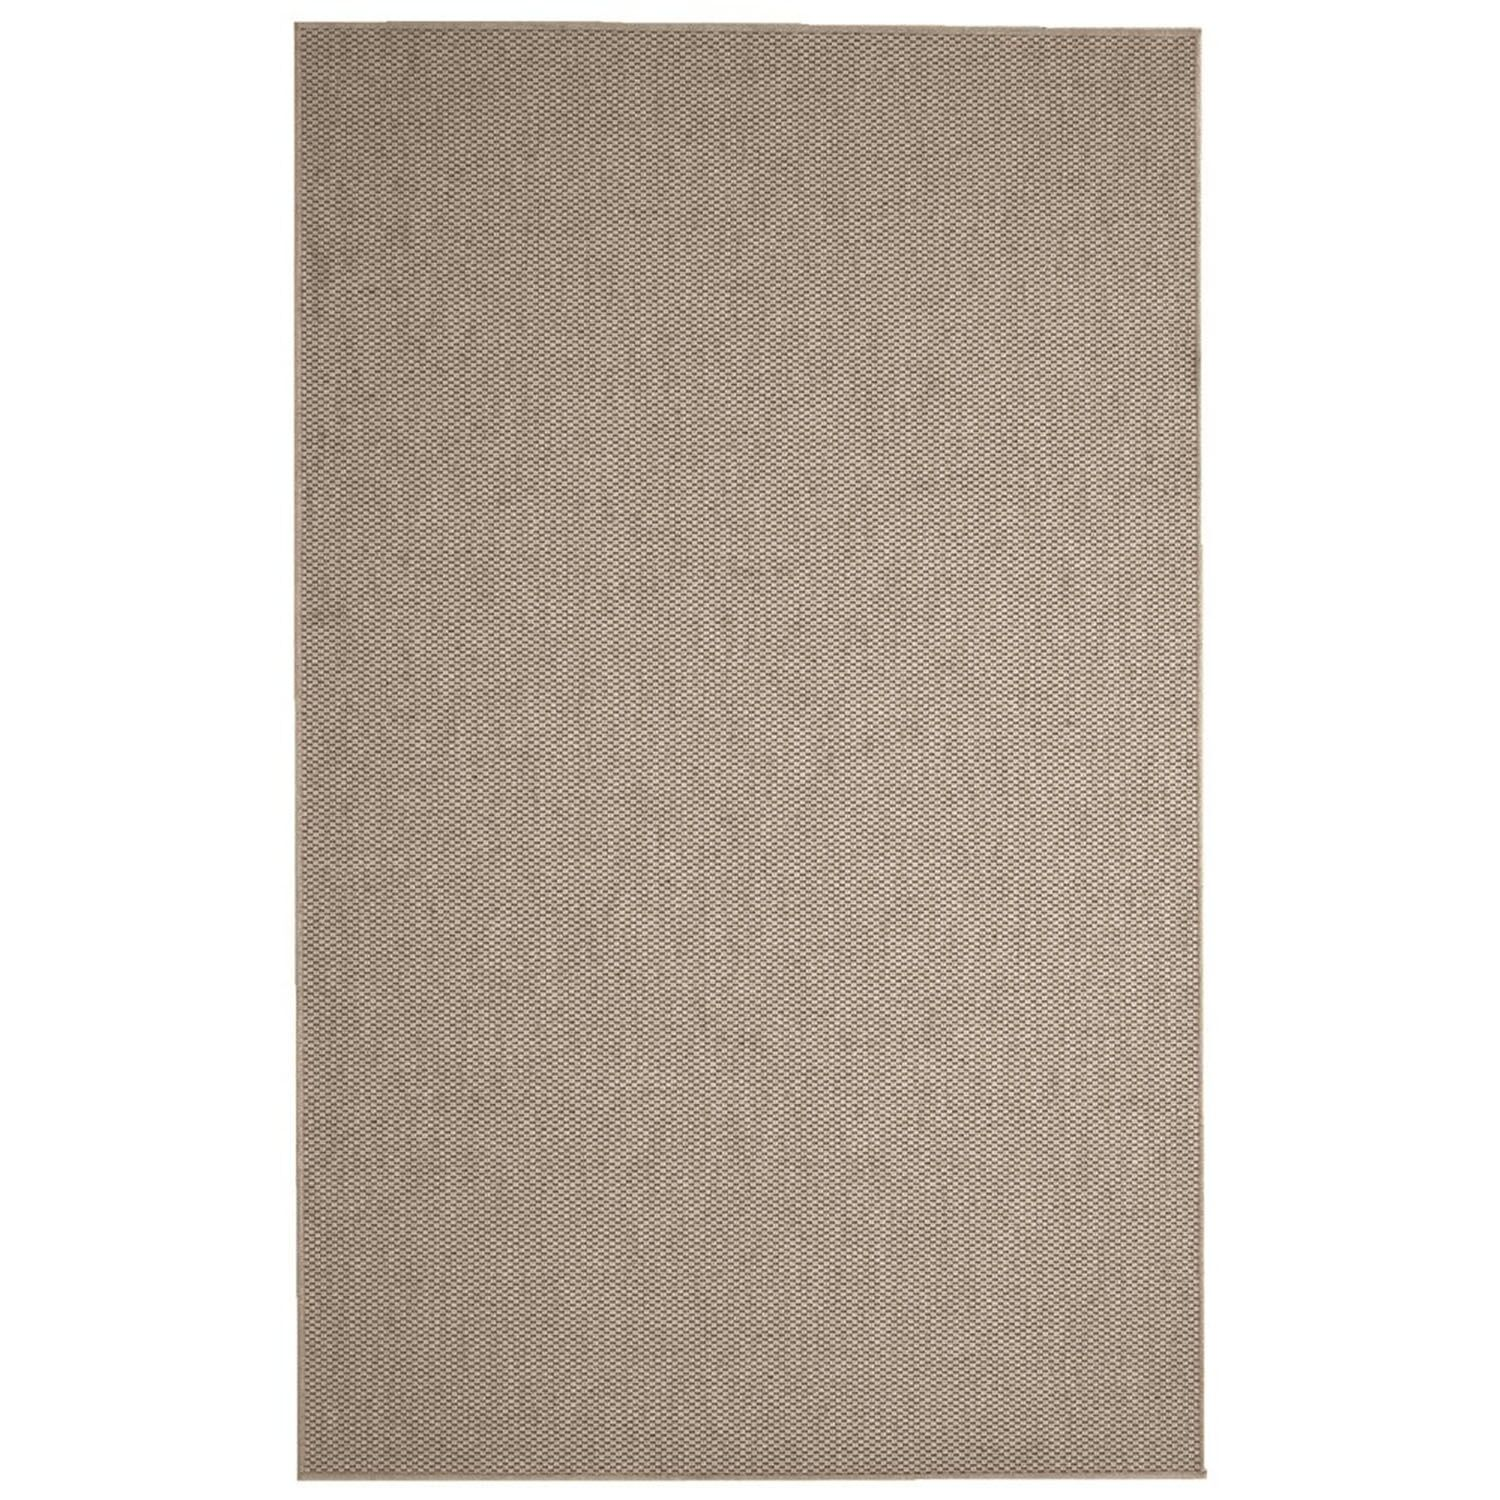 Paray Brown Area Rug Rug Size: Runner 2'6